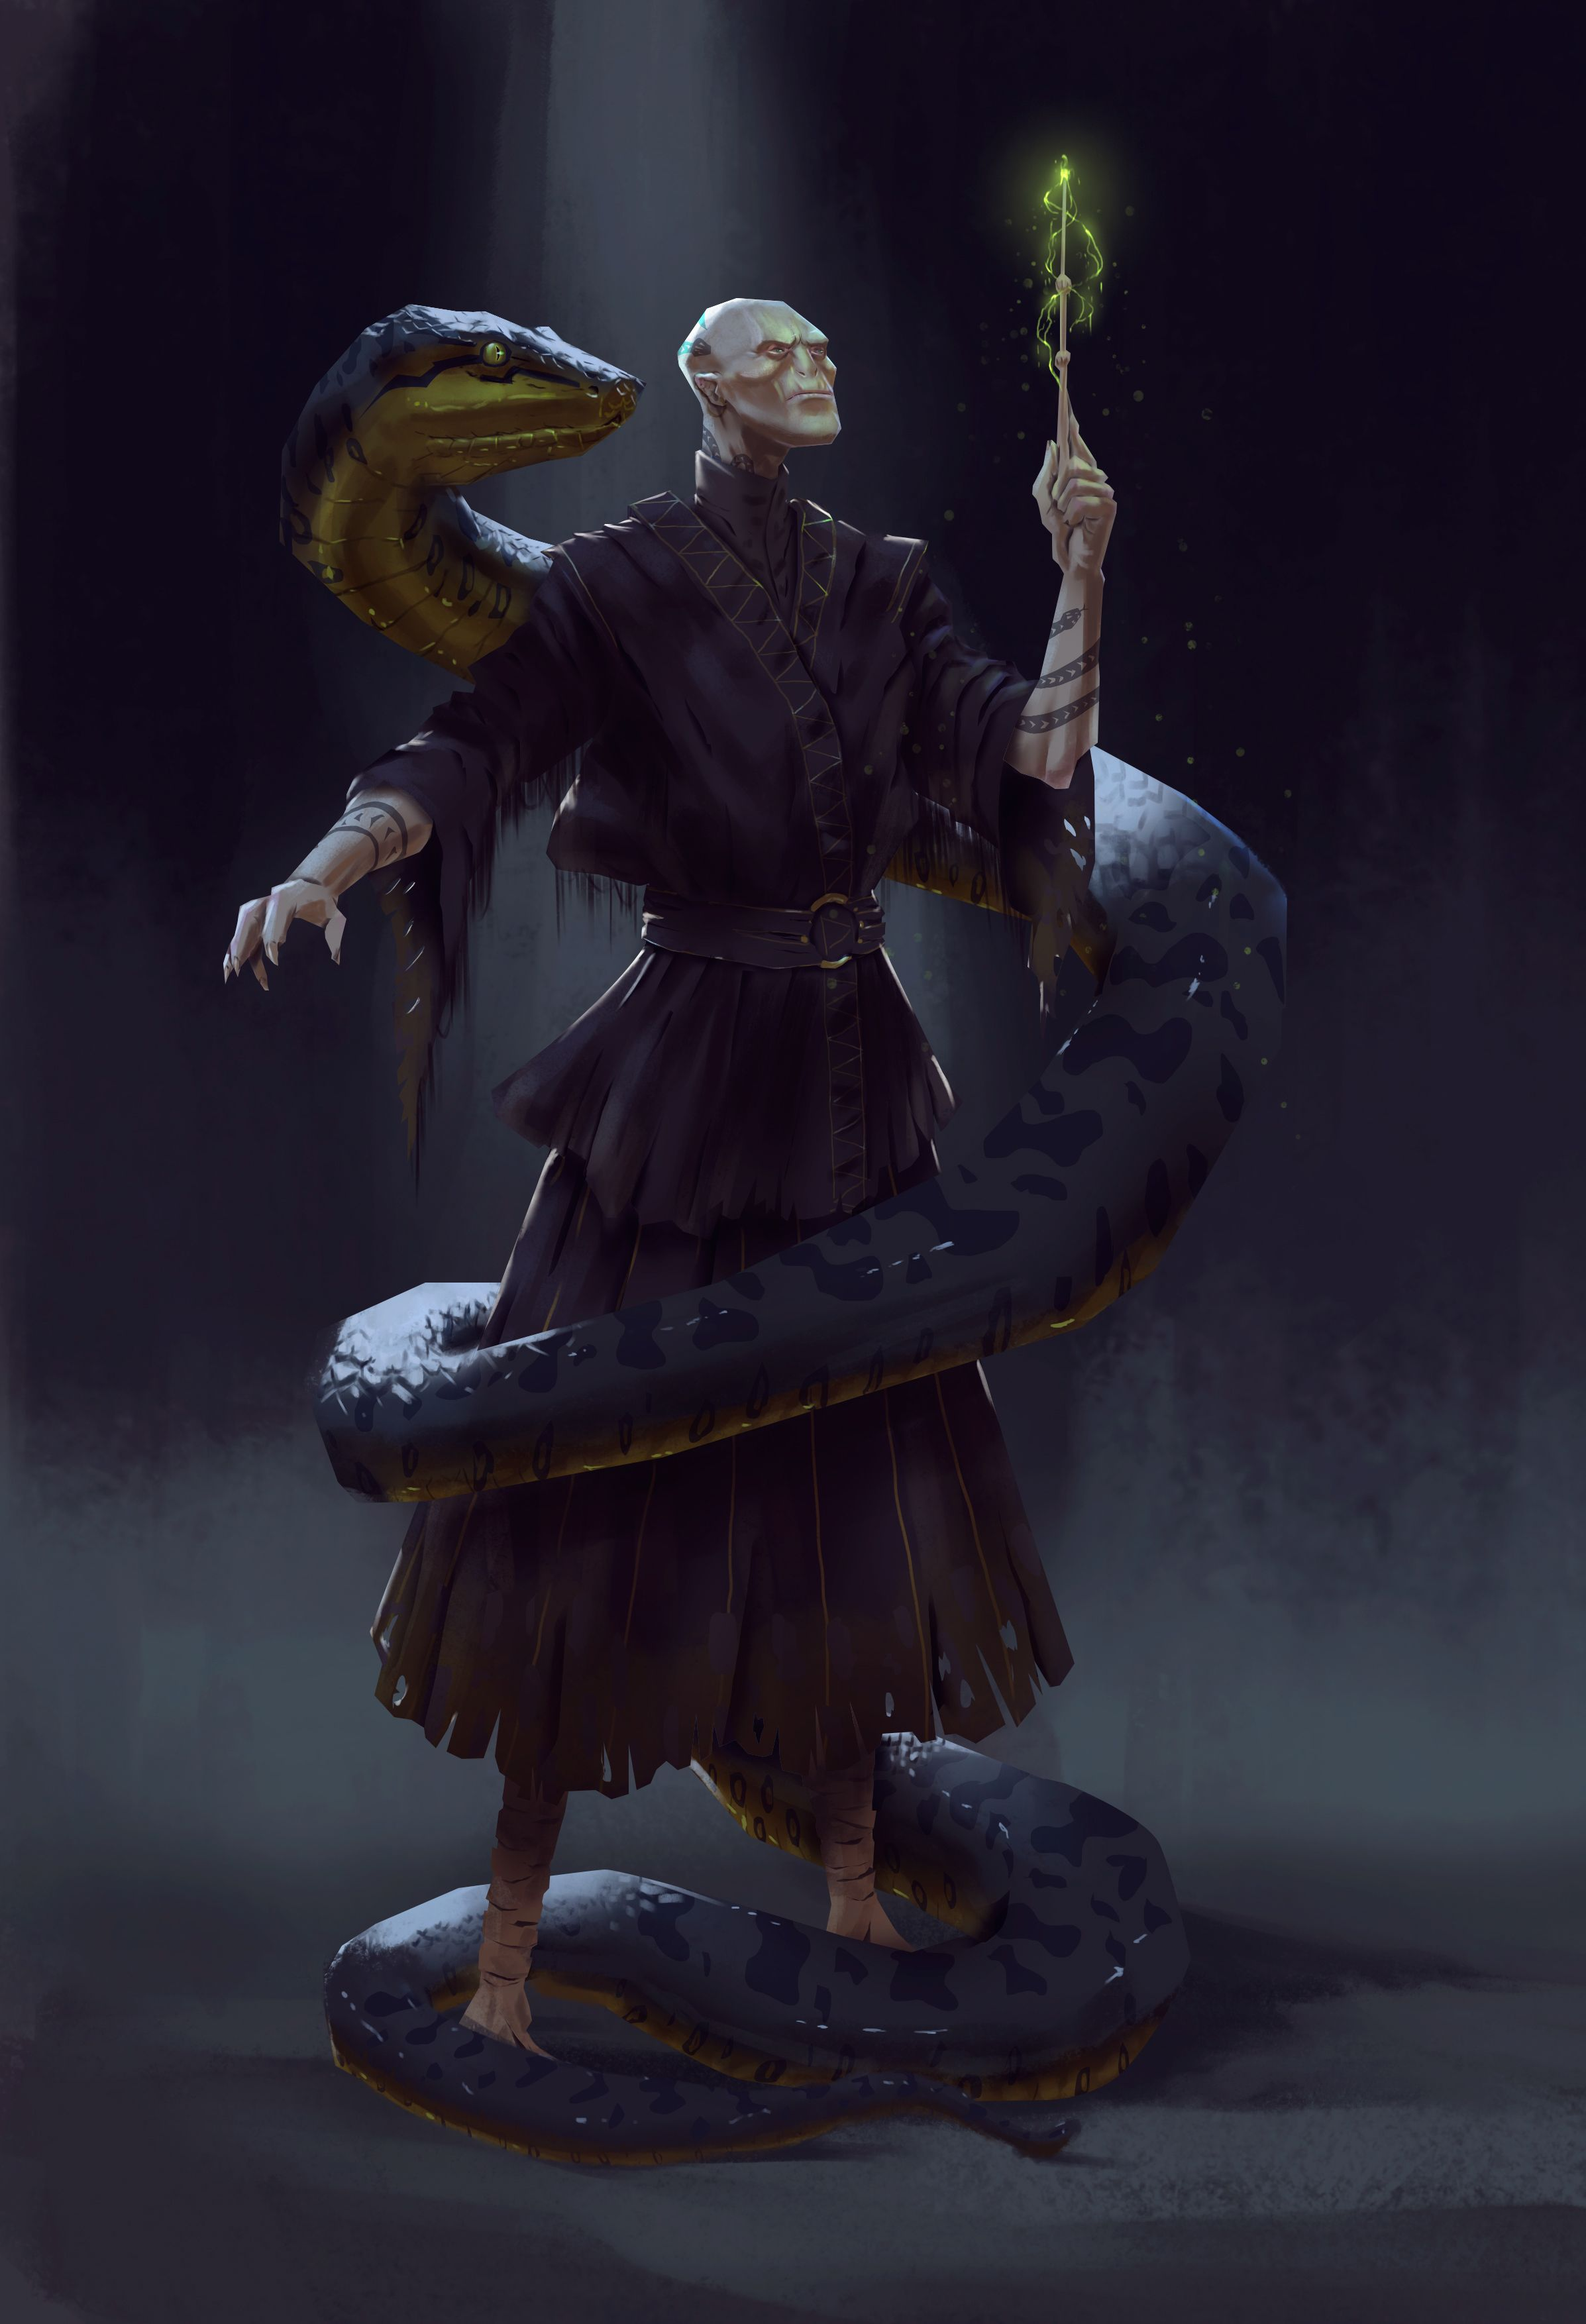 Harry Potter Character Design Challenge Facebook : Voldemort and nagini redesign i did for a facebook group